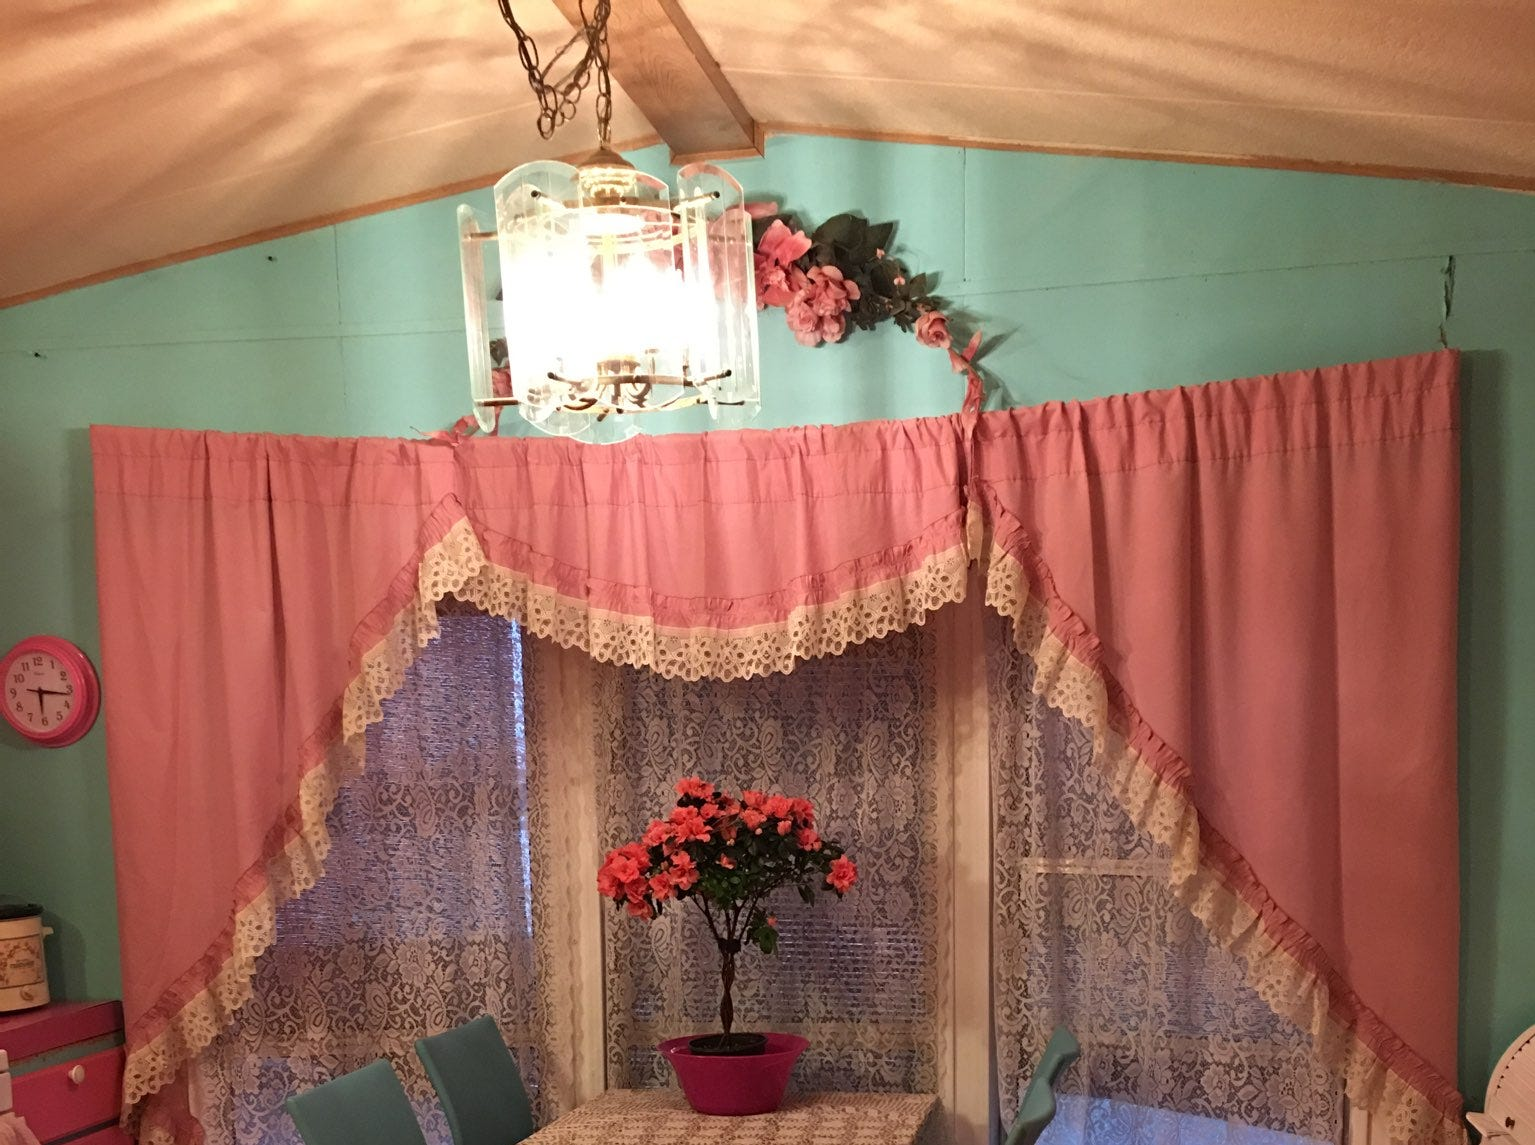 The interior of Mary Ann Sharp's Keswick home before the Carr Fire destroyed it. She painted everything in a signature combination of pink and turquoise.